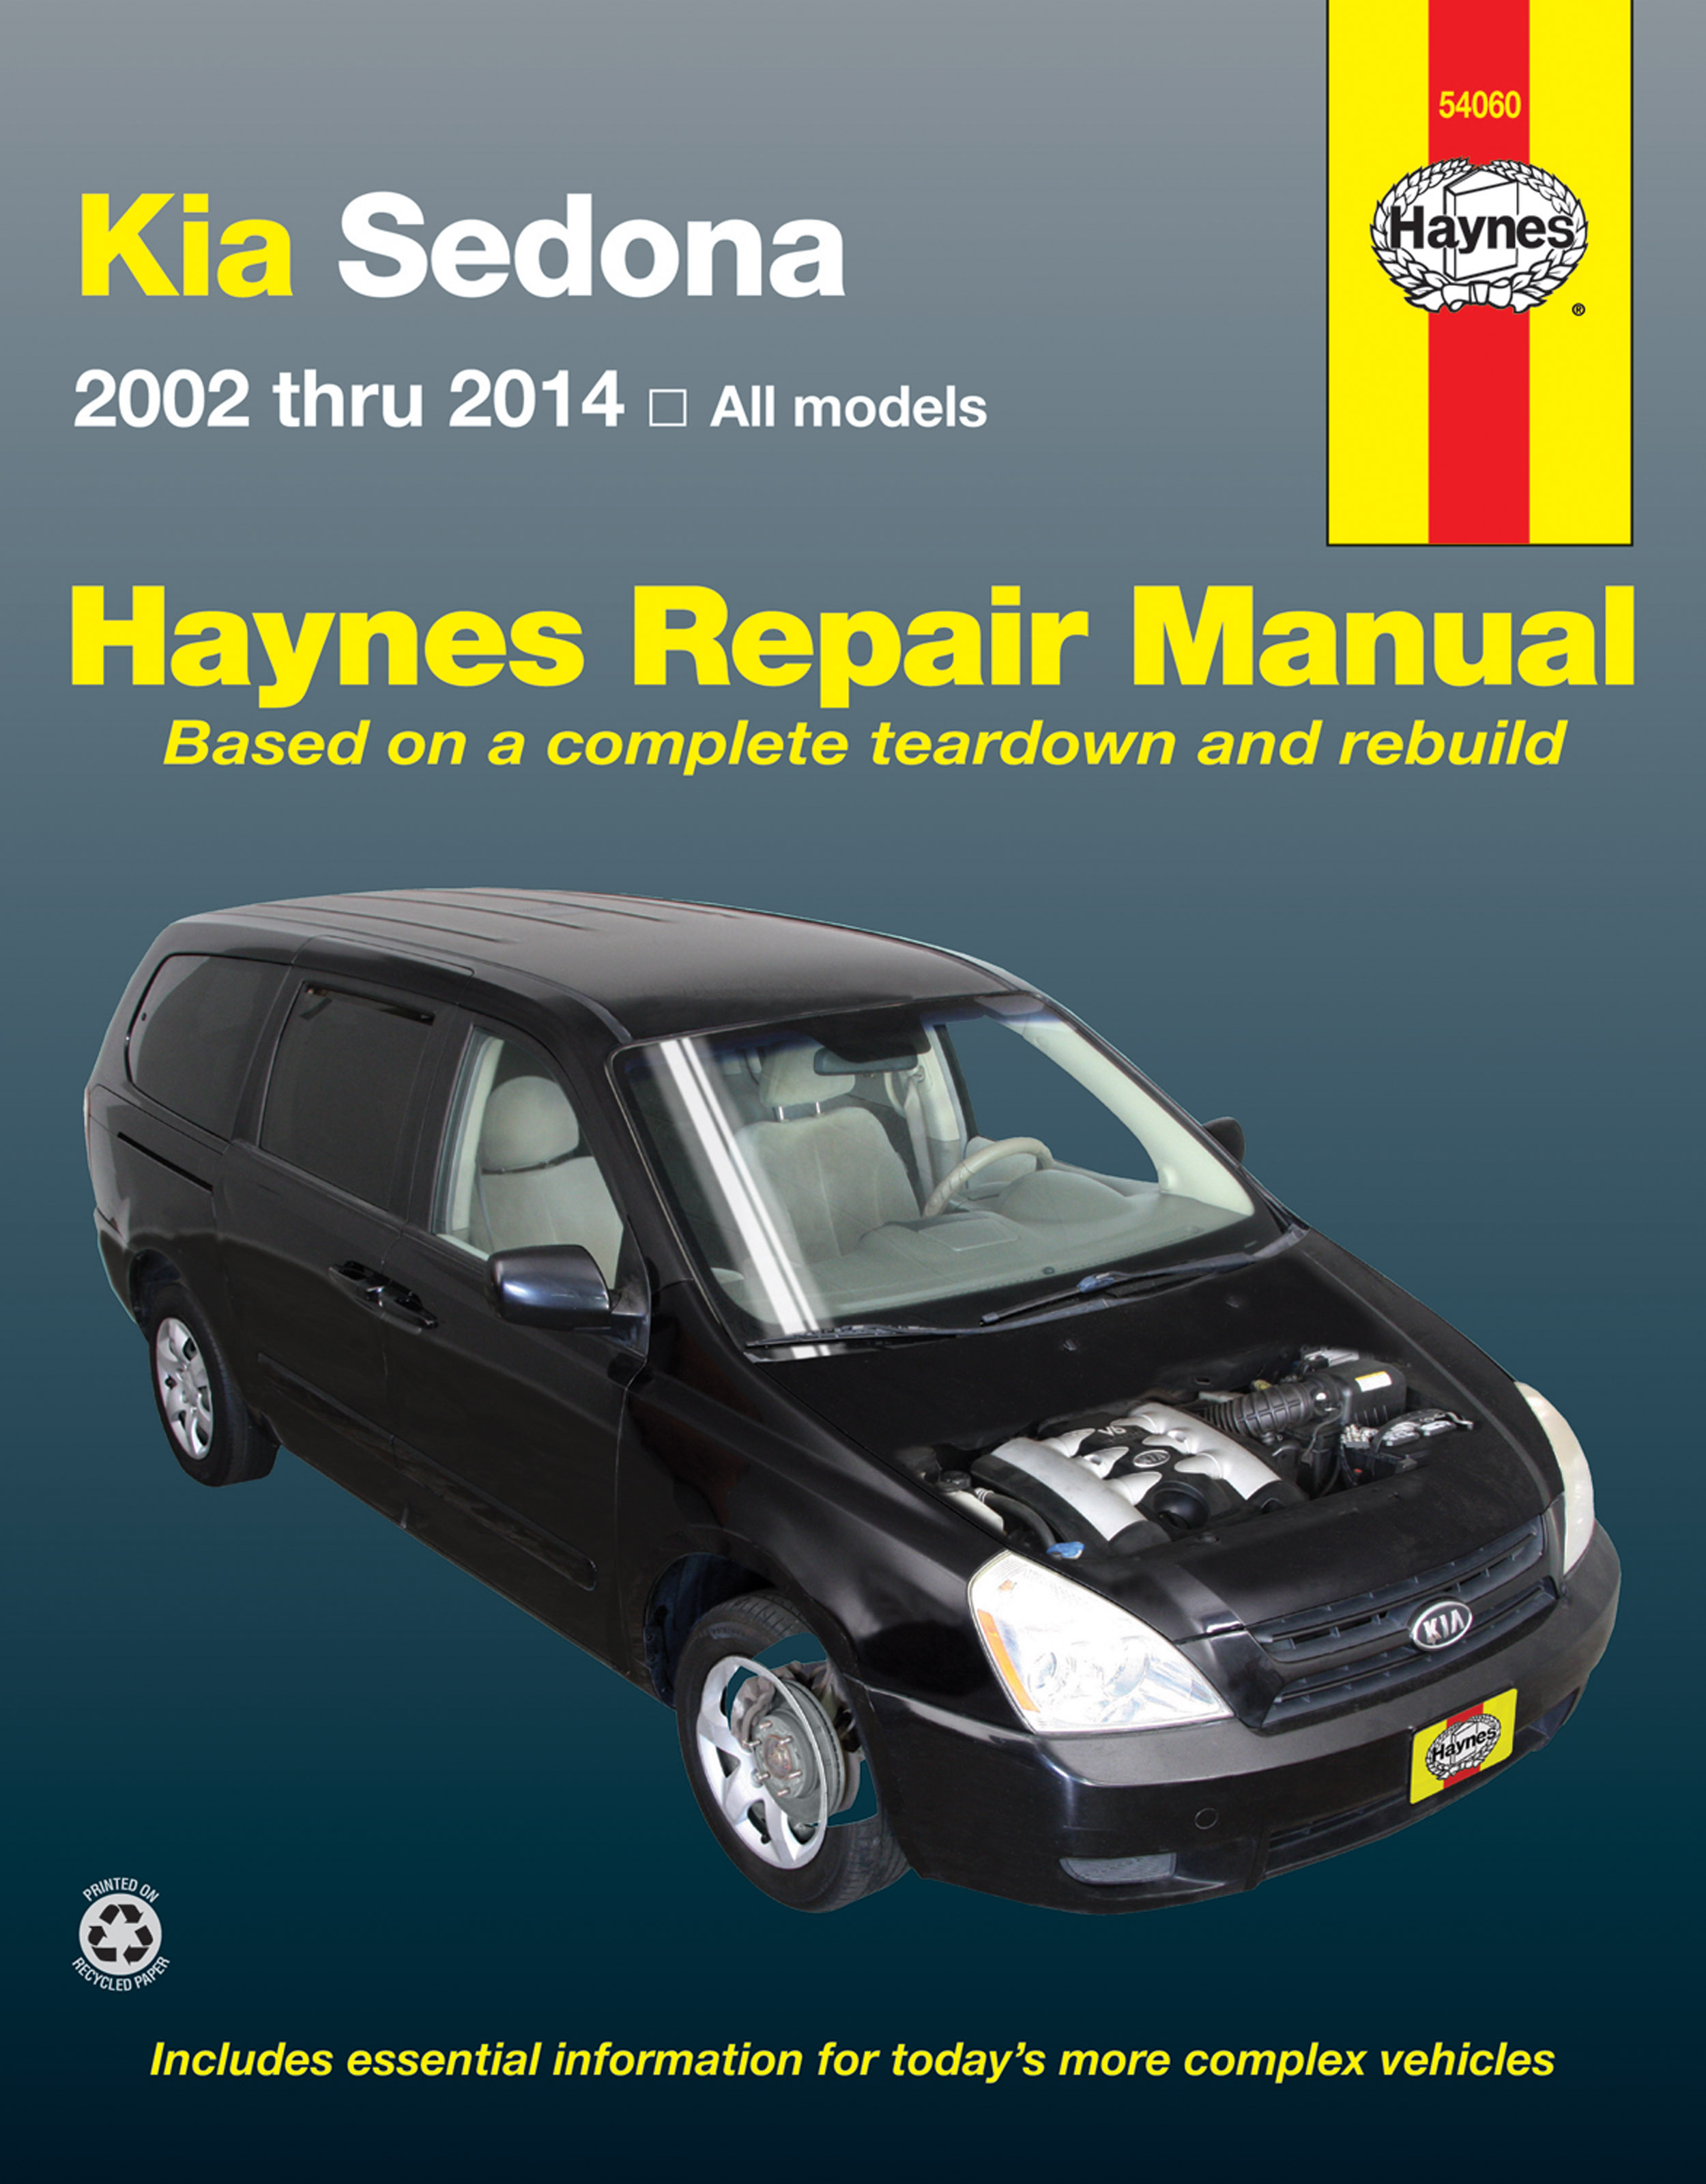 kia sedona wiring diagram pdf free    kia       sedona     02 14  haynes repair    manual    haynes manuals     kia       sedona     02 14  haynes repair    manual    haynes manuals